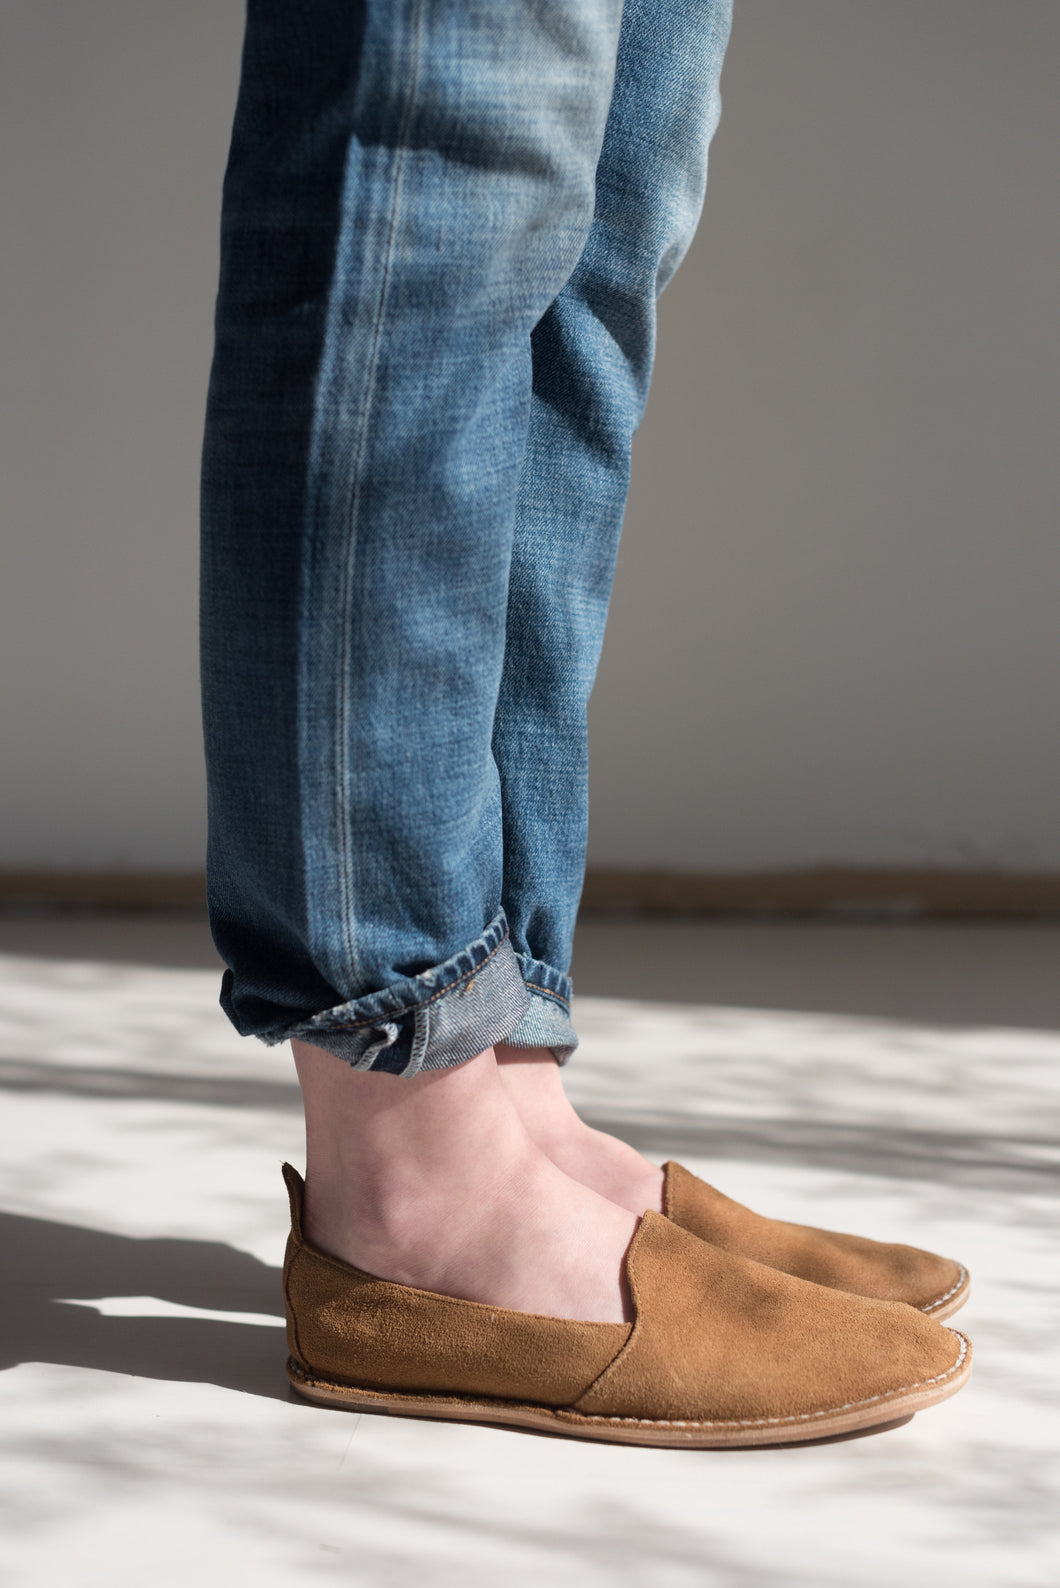 Vayarta Baja Suede Unisex Mocassin in Dune and Tan